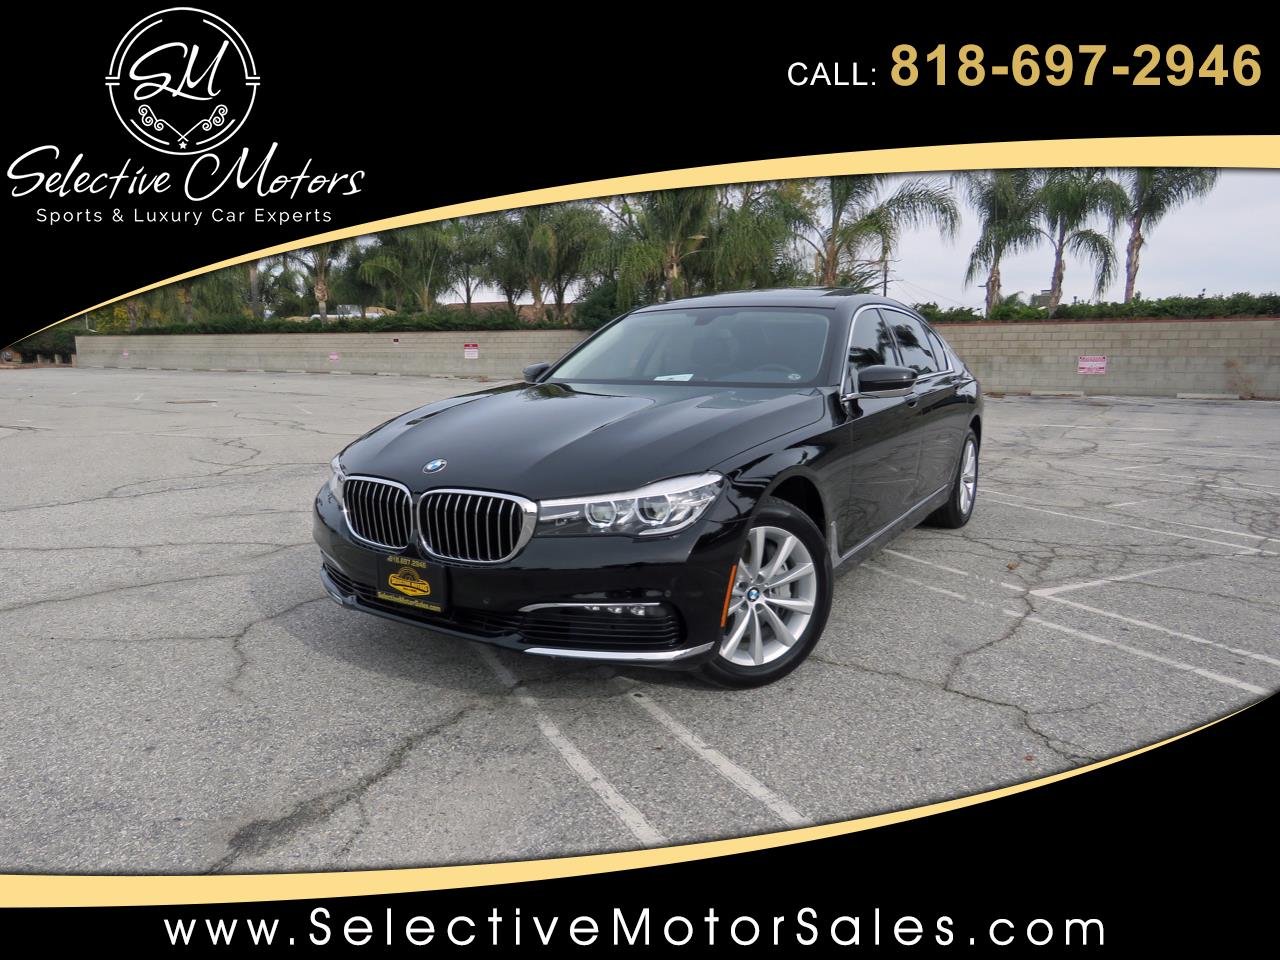 2017 BMW 7-Series 740i Luxury Pkg.